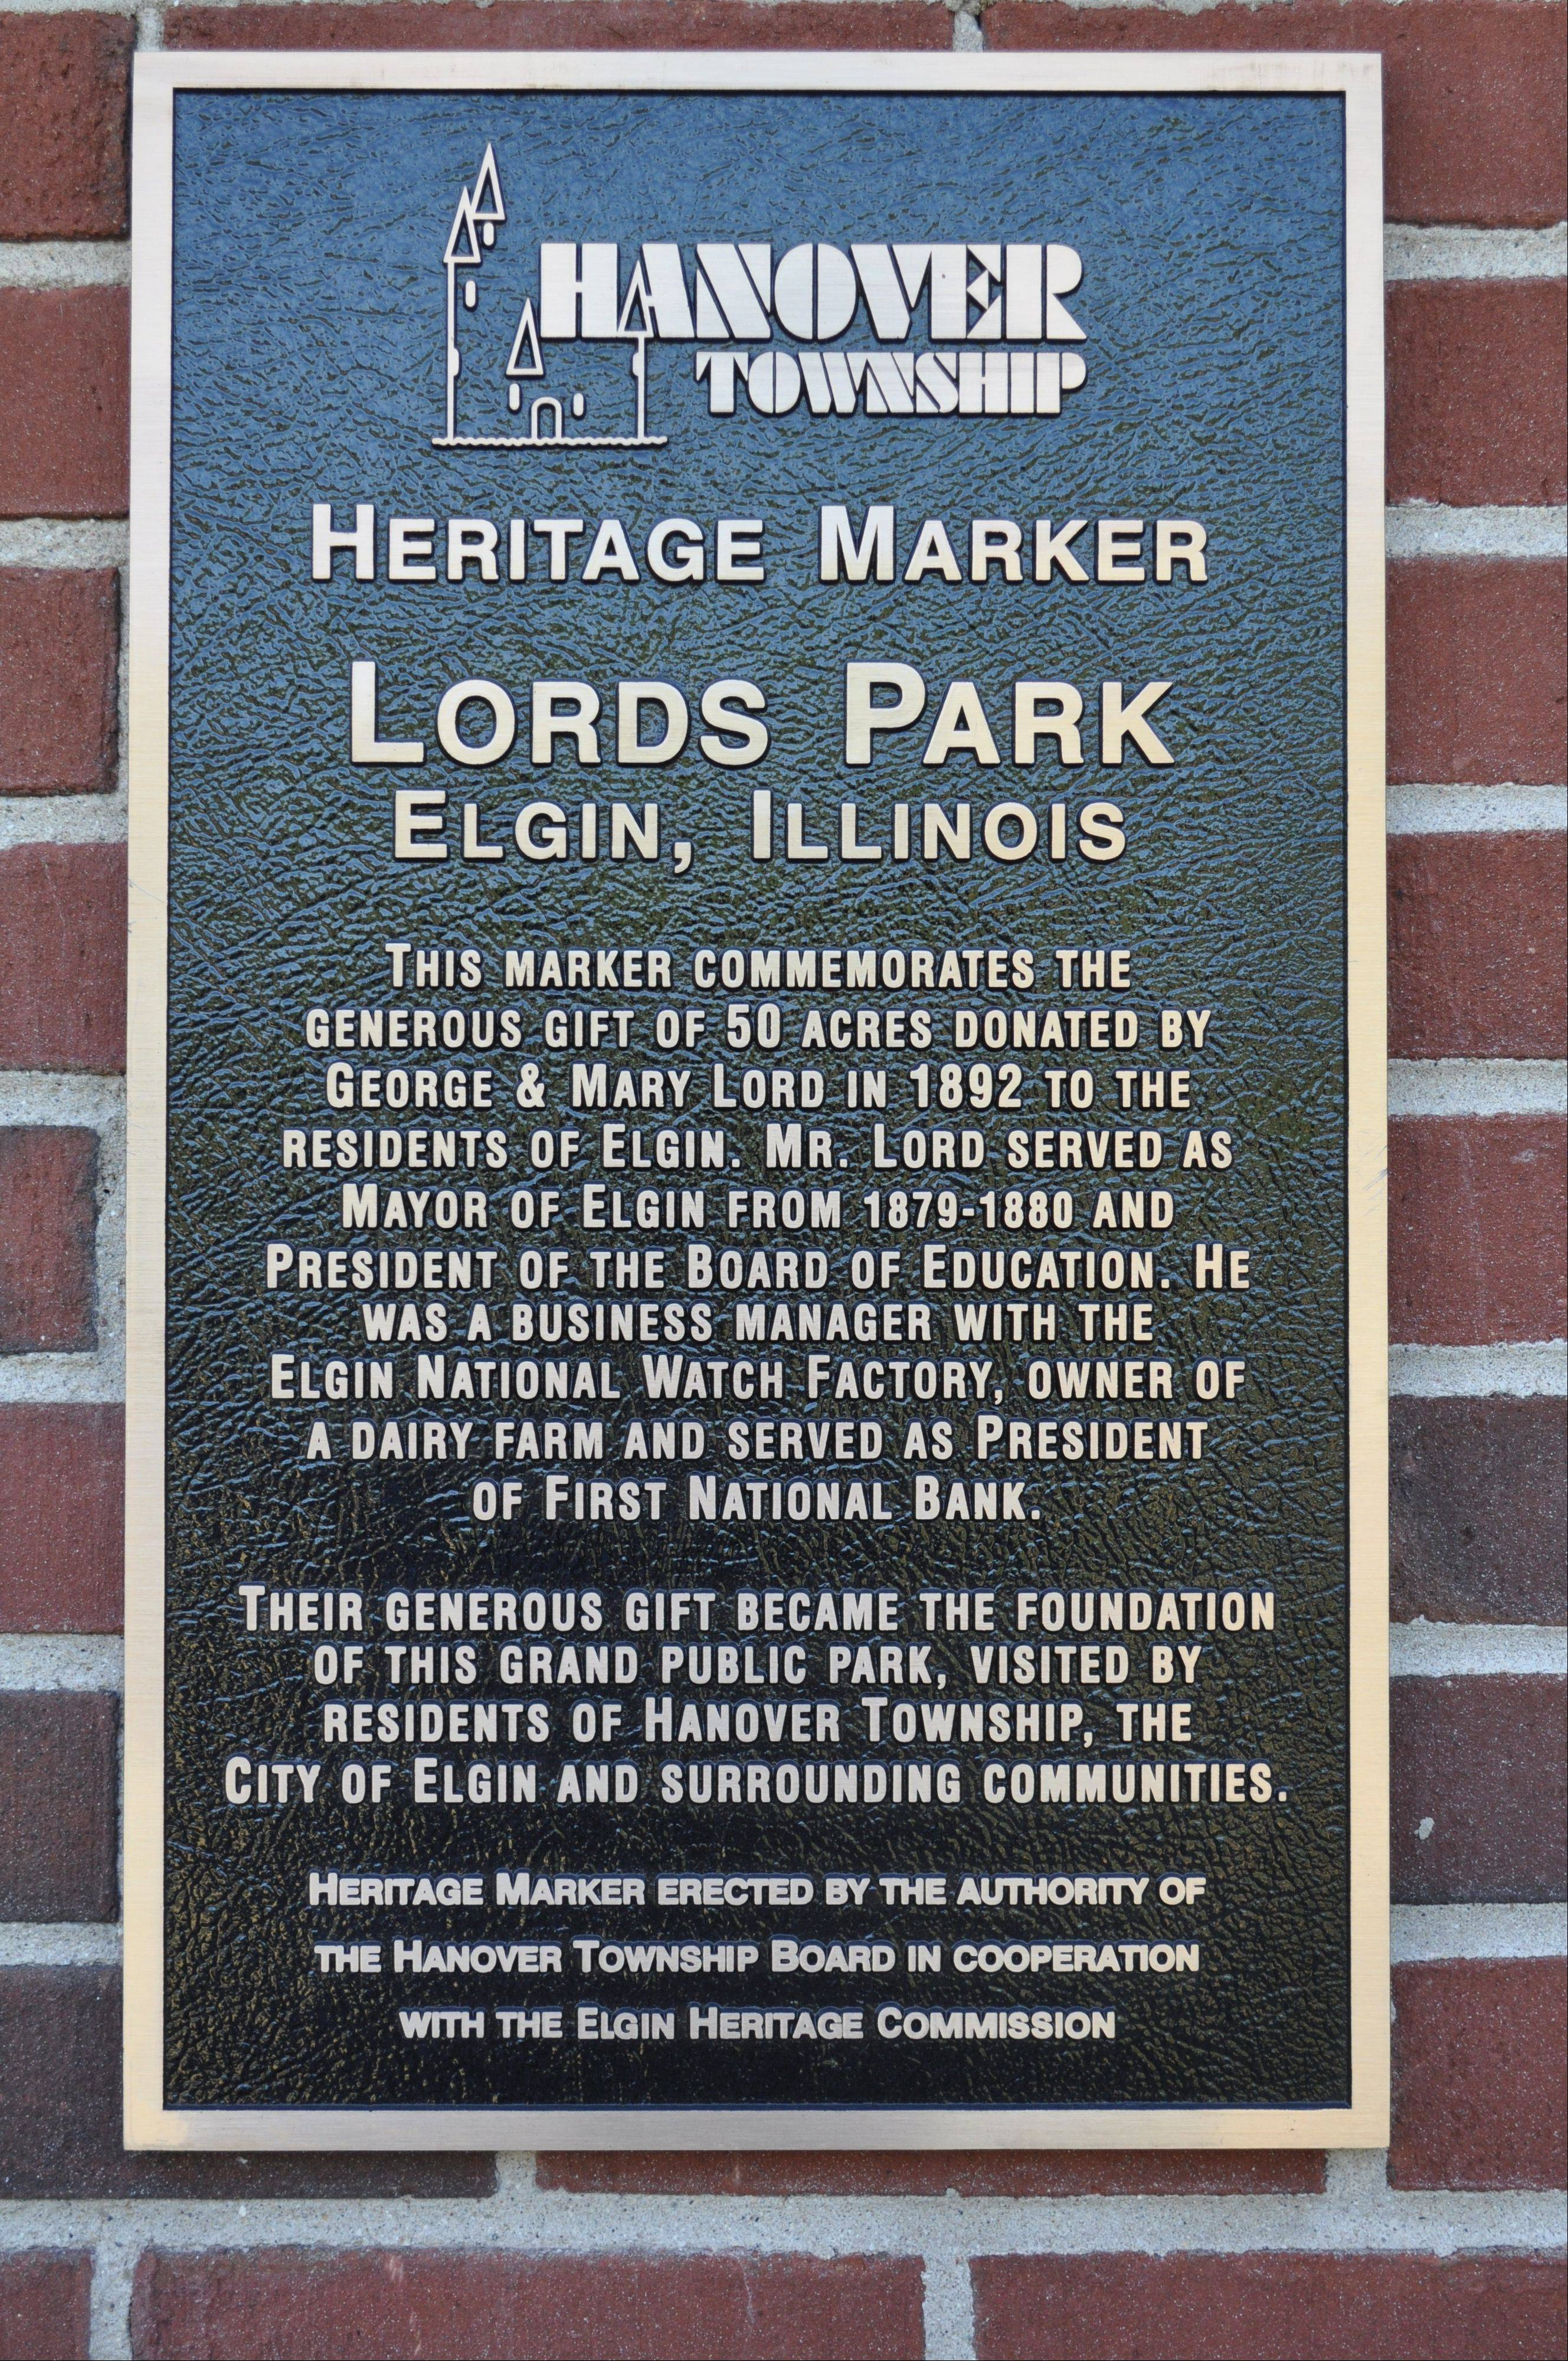 Heritage Marker at Lords Park